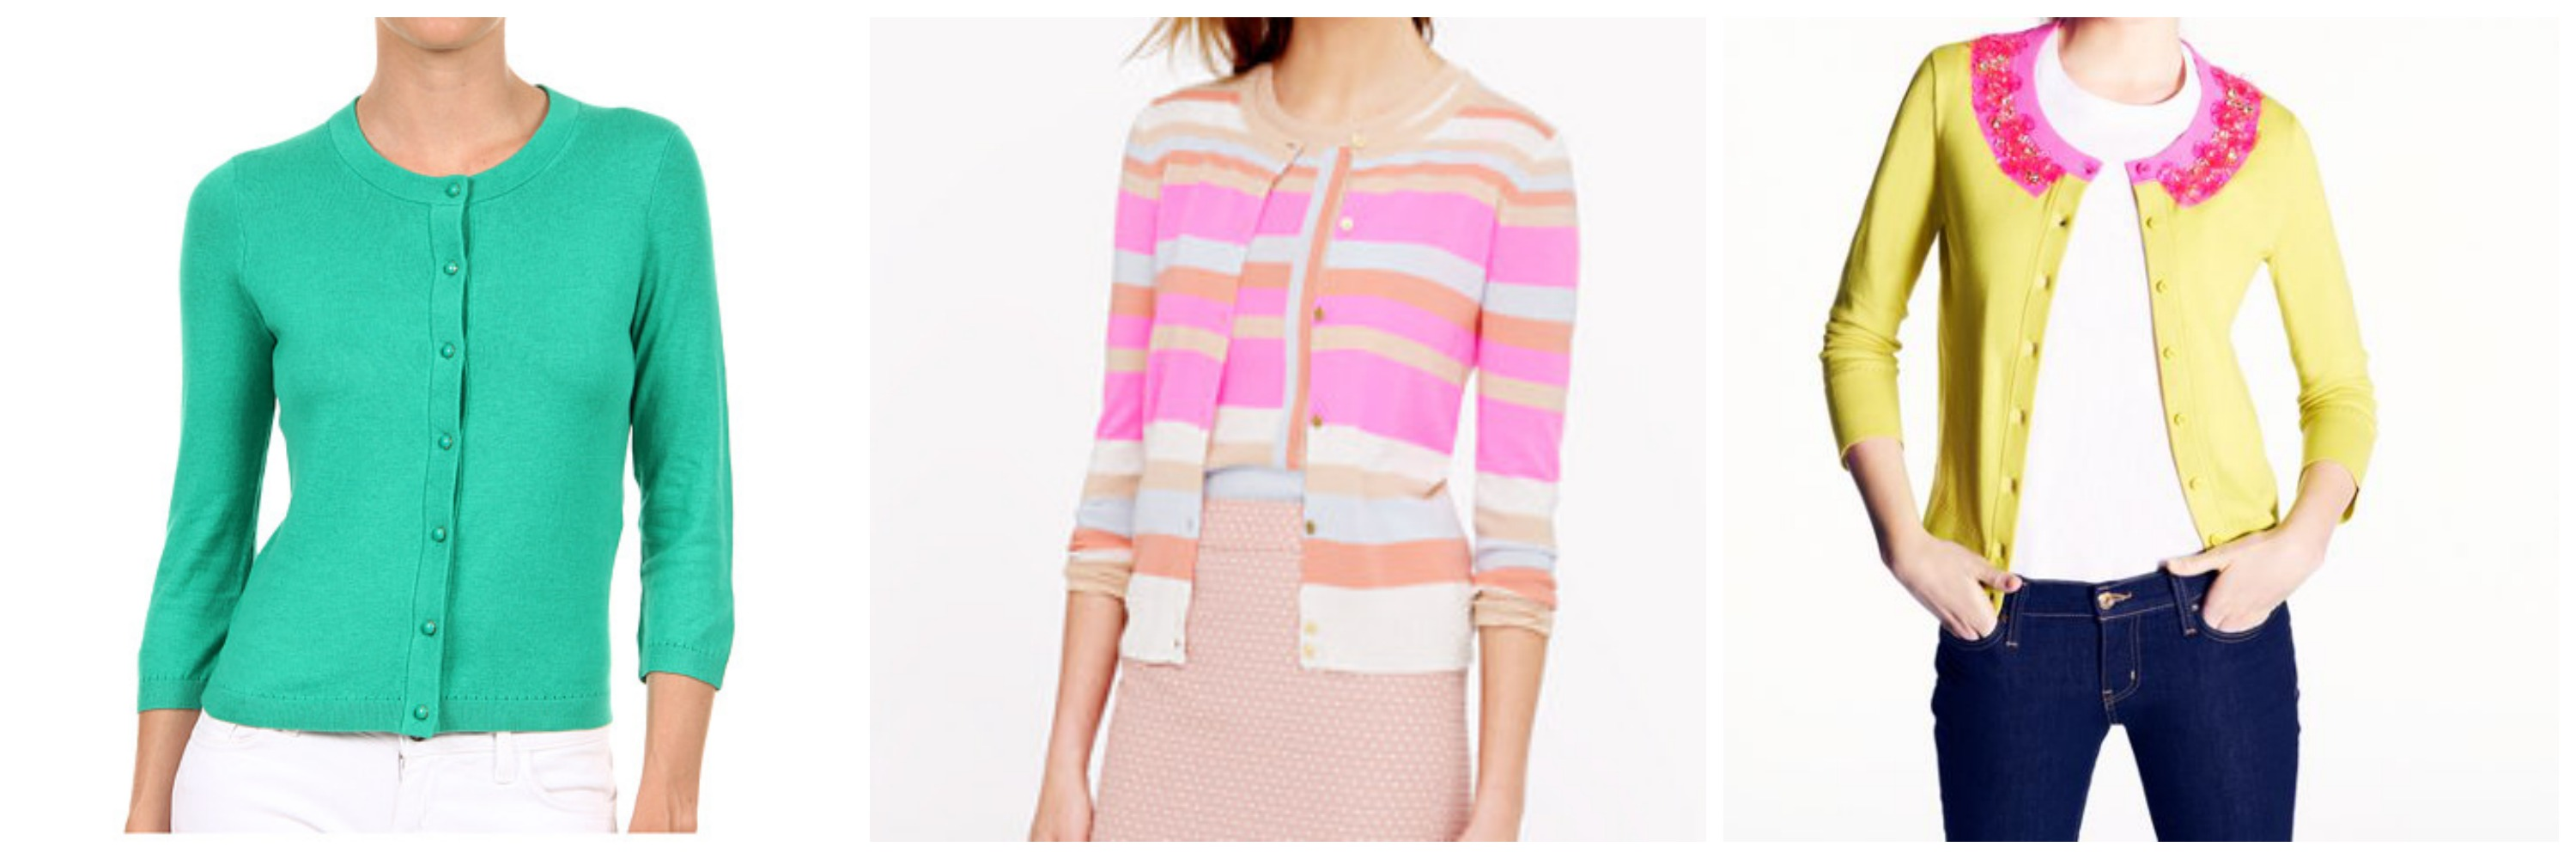 J.Crew Collection Cashmere Striped Cardigan, Kate Spade Azalea Cardigan, Kate Spade Sofia Cardigan